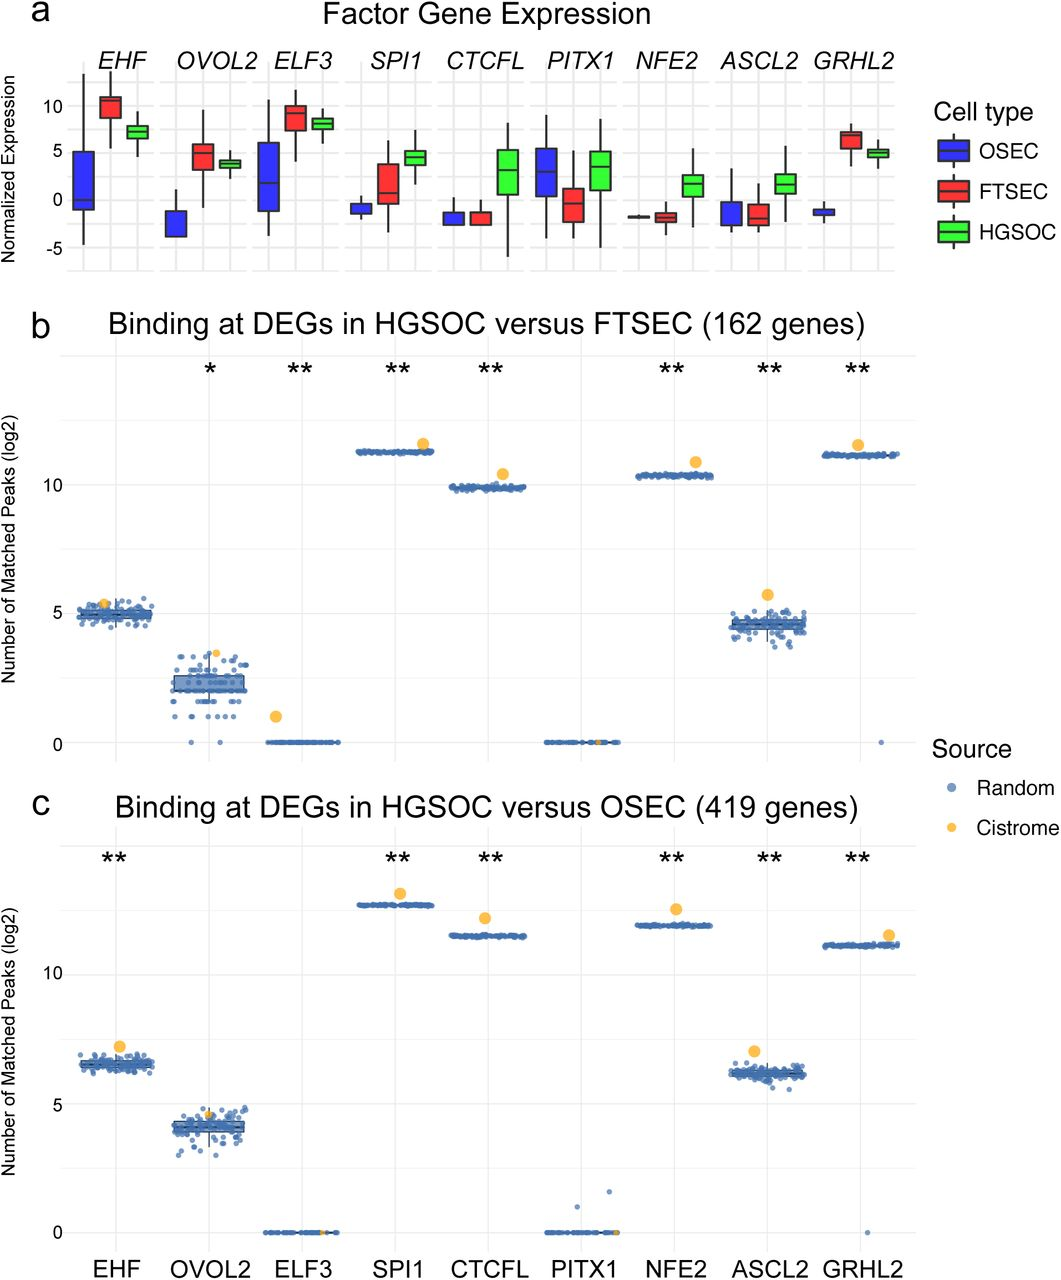 Integrated Molecular Profiling Studies to Characterize the Cellular